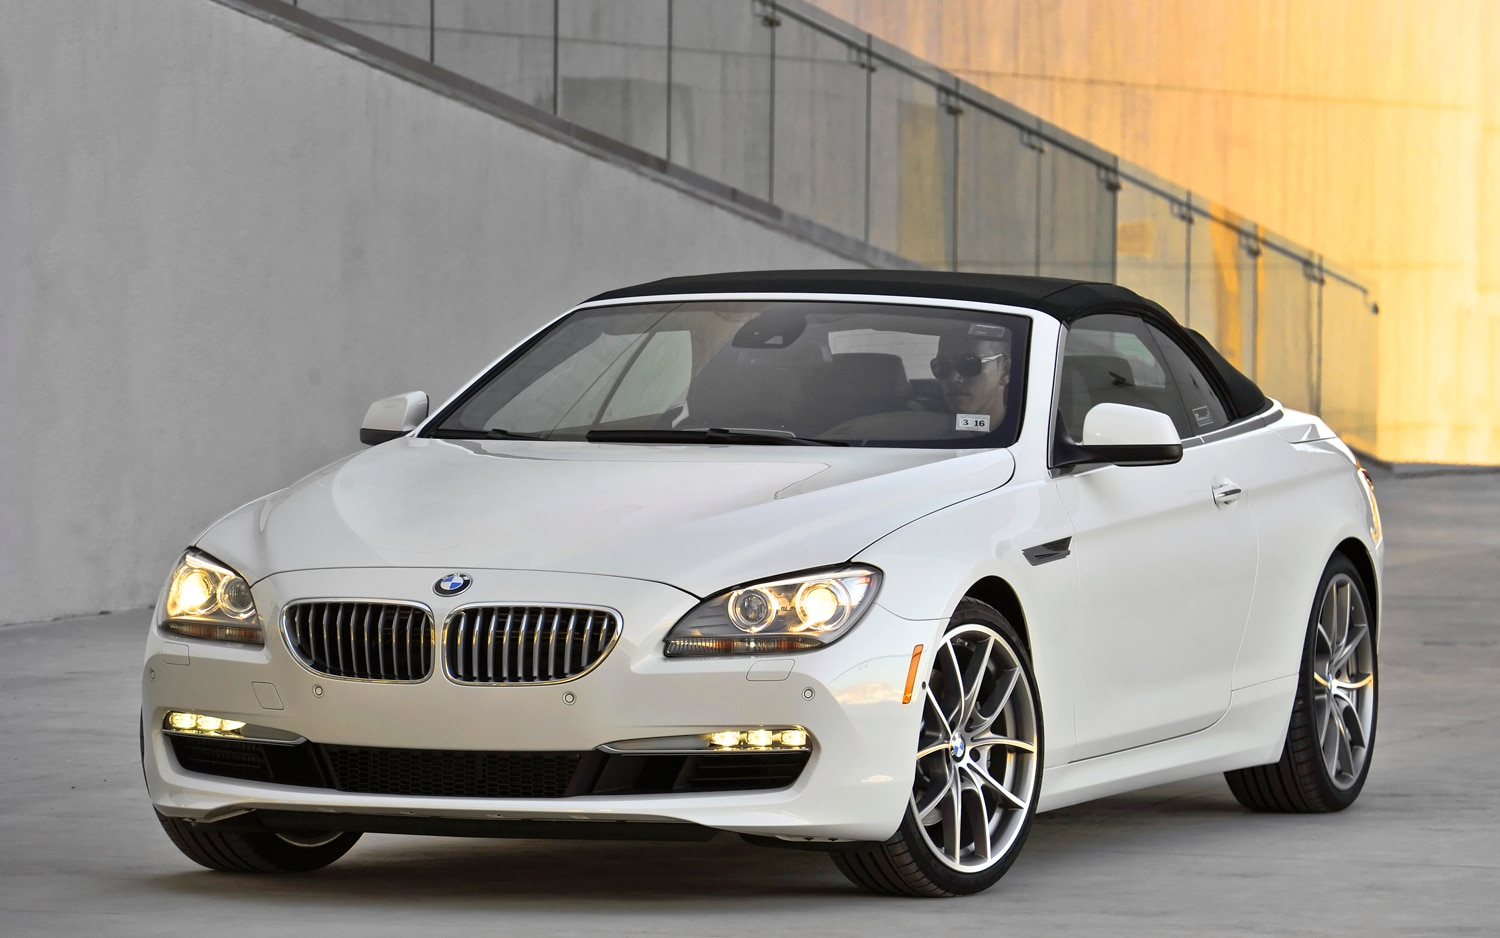 2012 BMW 650i XDrive Convertible Front Left View1